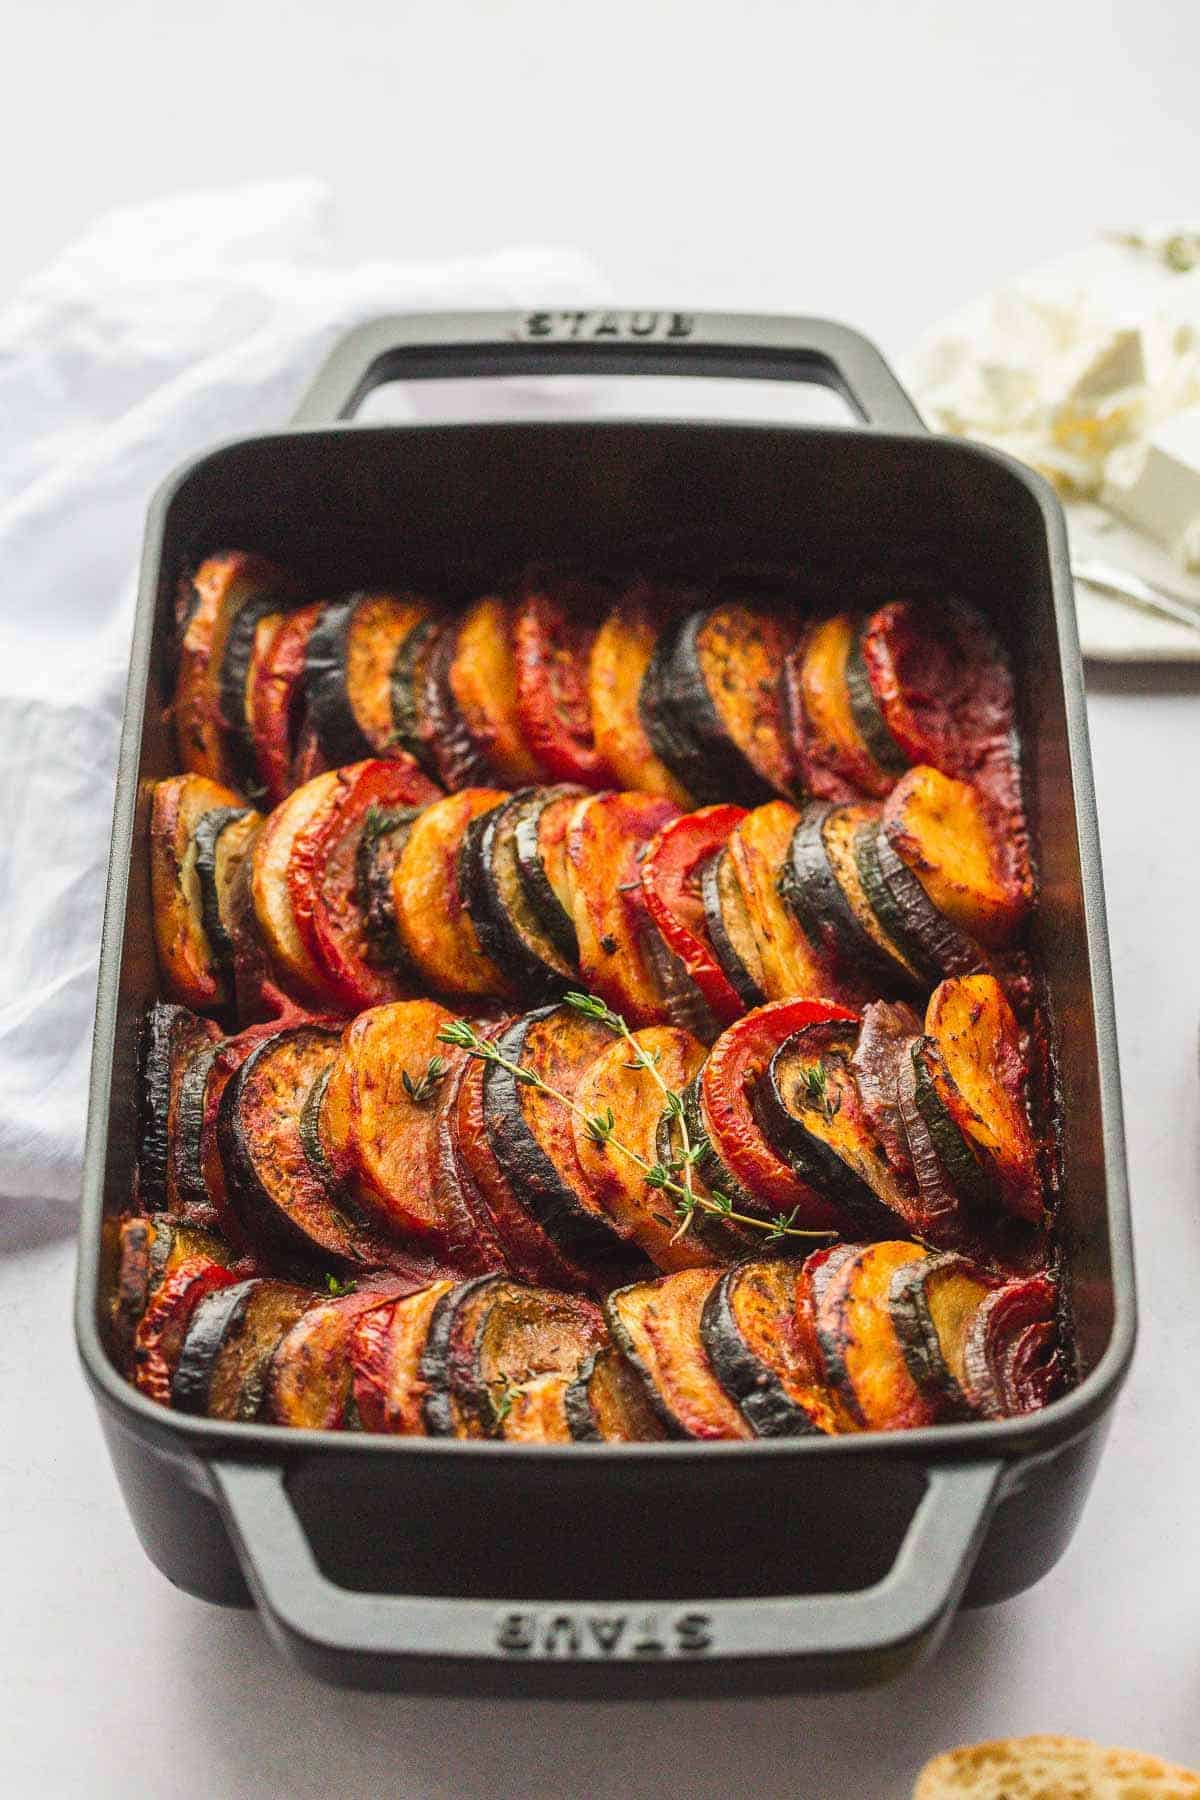 Perfectly roasted Briam vegetables in a black Staub baking dish